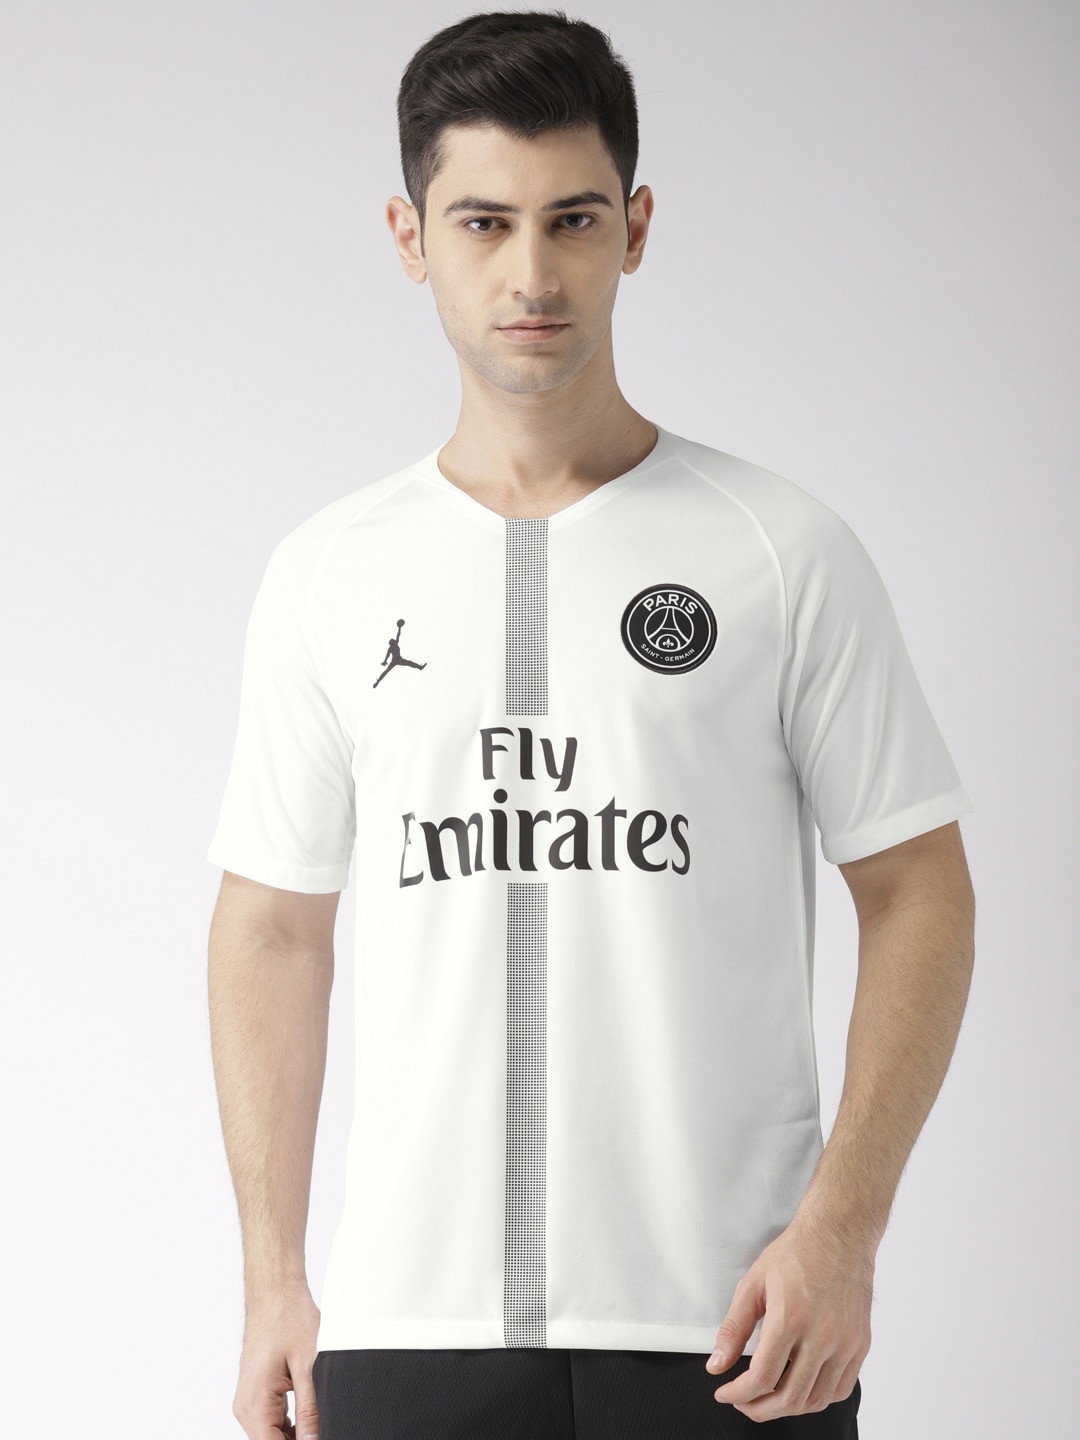 c1e3f6c12565 Men s Nike Clothing - Buy Nike Clothing for Men Online in India